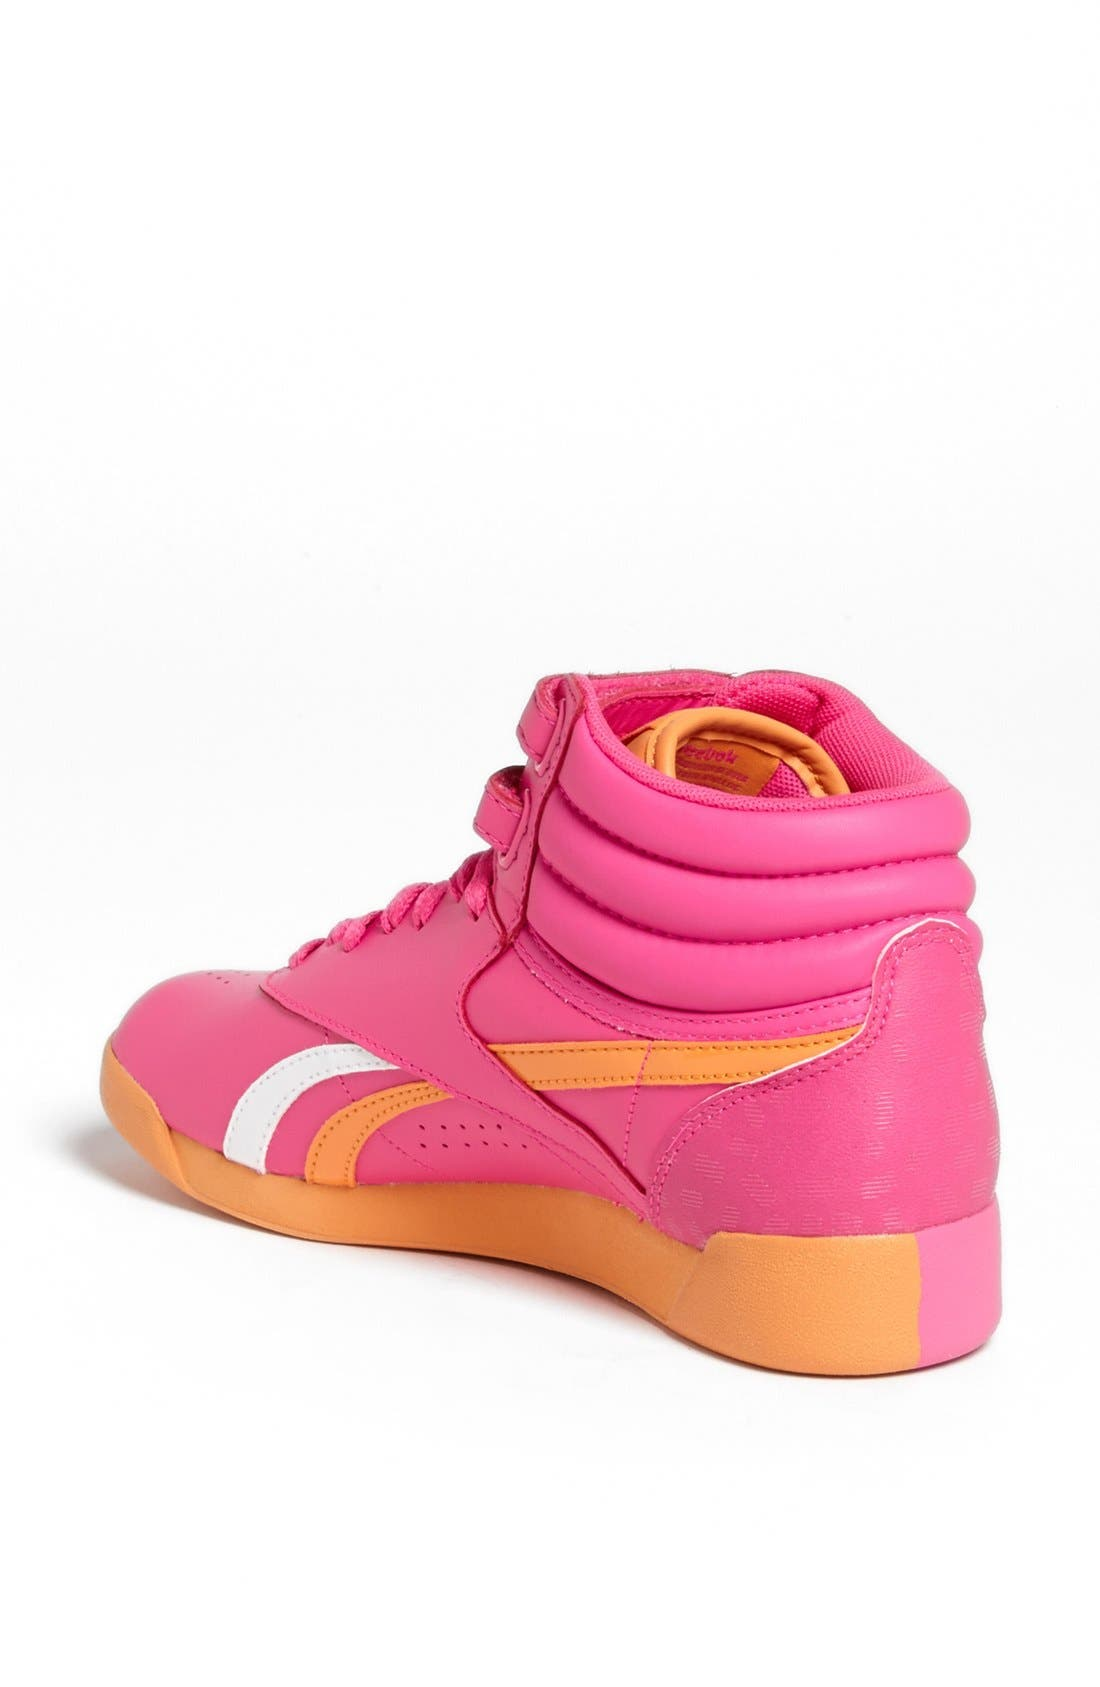 Alternate Image 2  - Reebok 'F/S Hi Splitz' High Top Sneaker (Women)